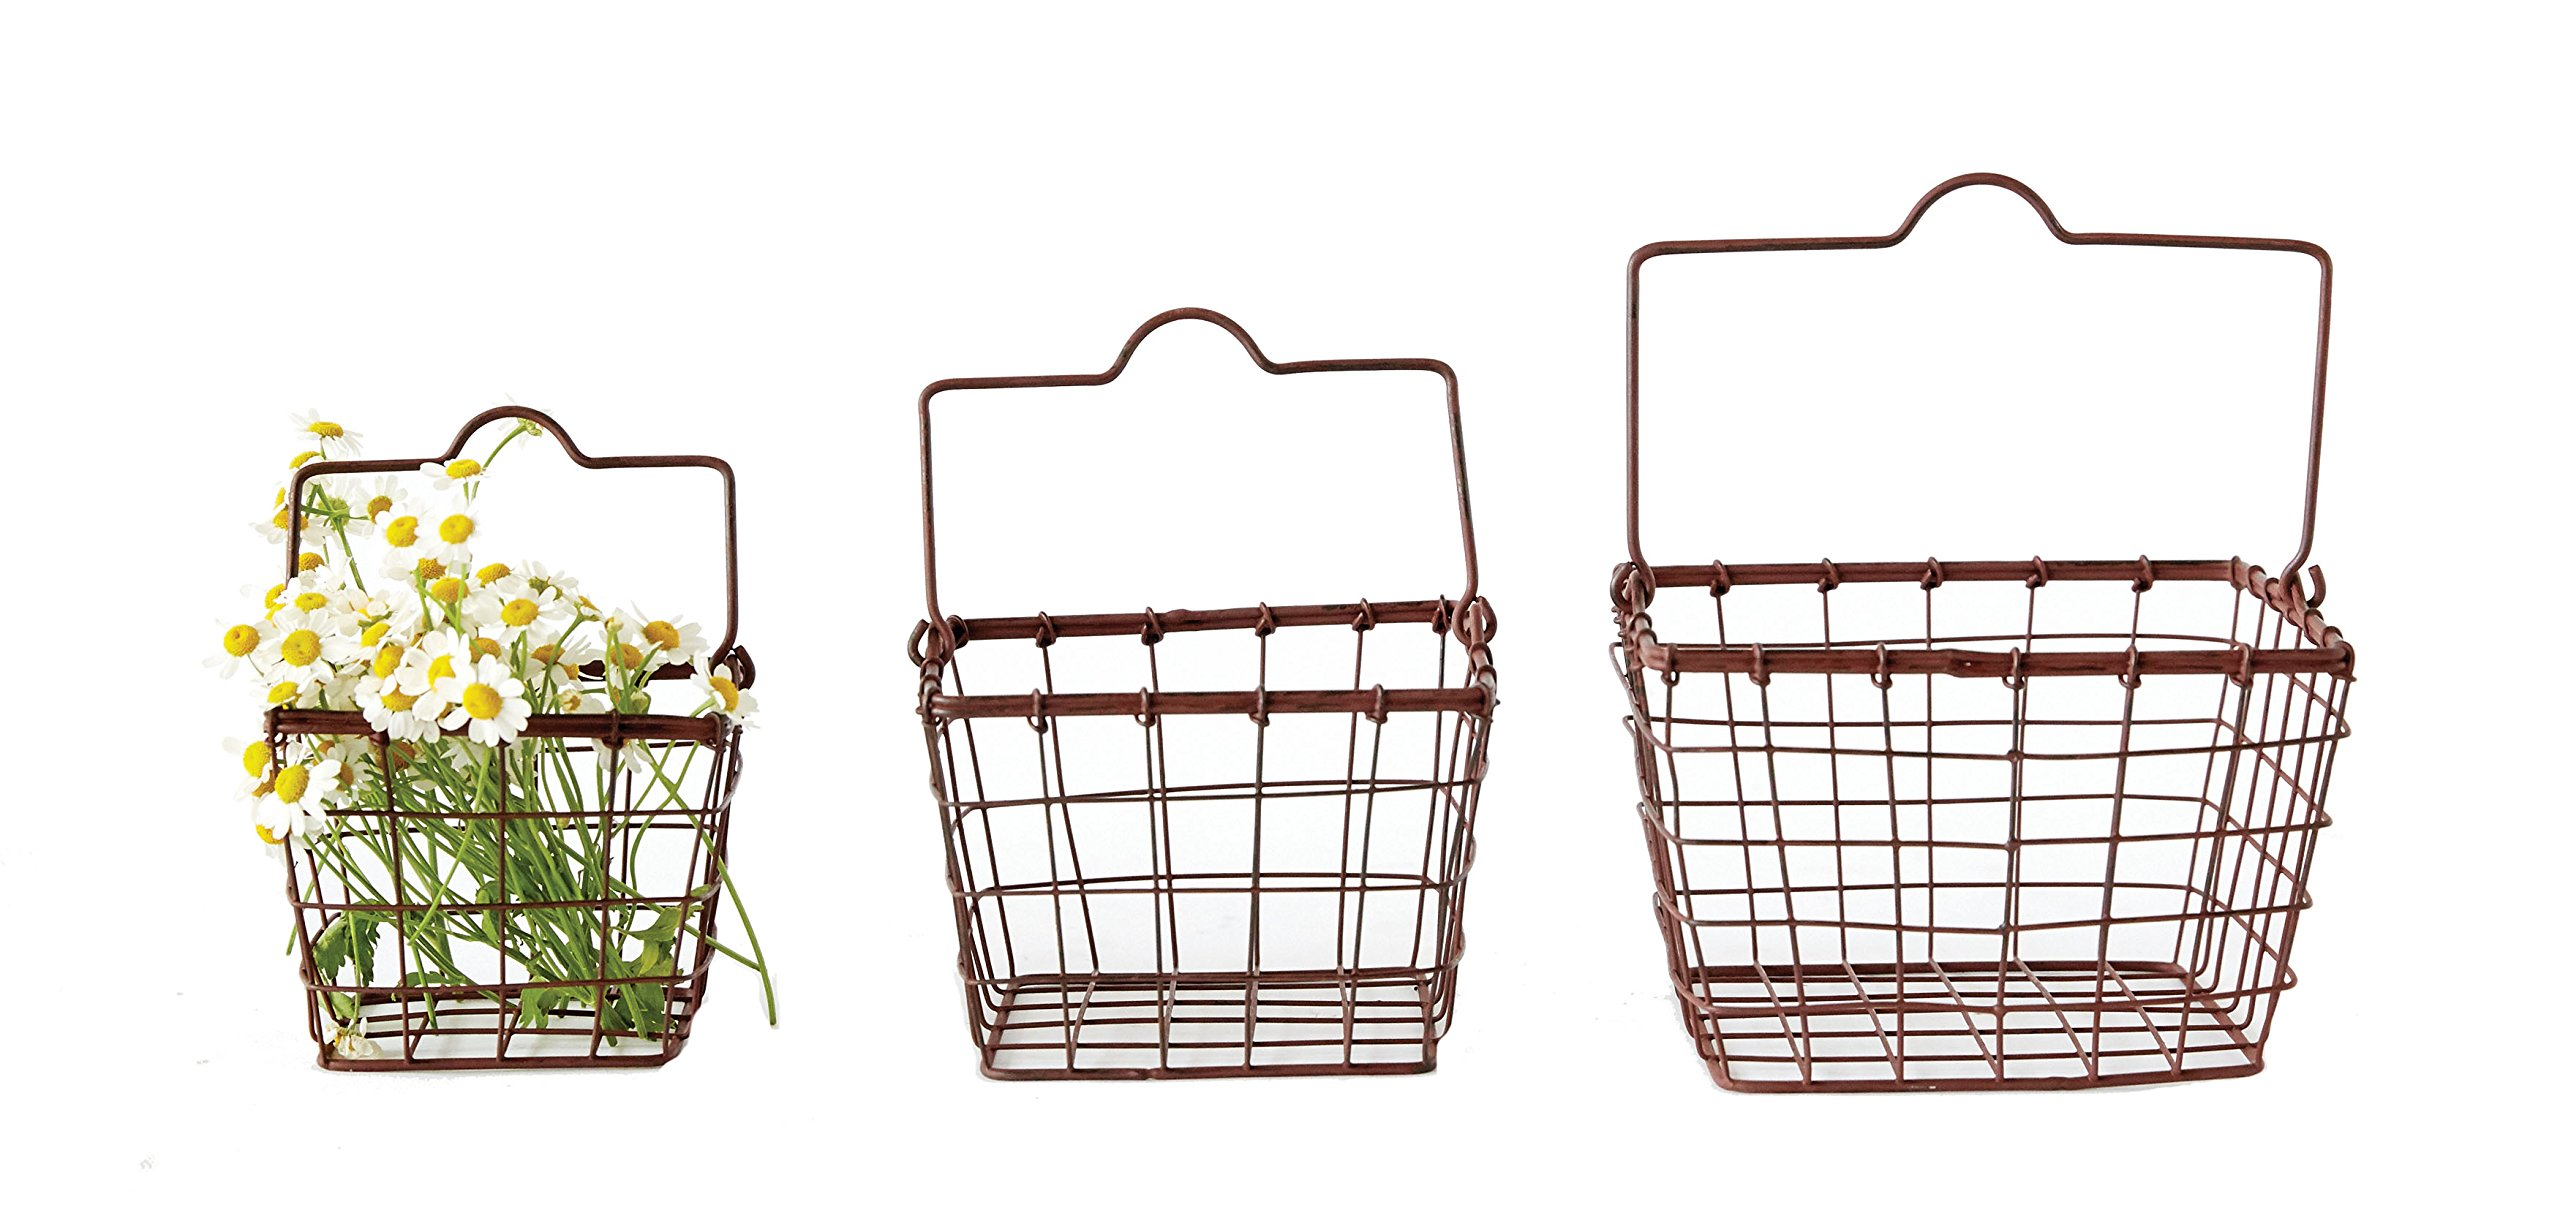 Creative Co-op DA6599 Square Metal Wire Basket Set with Handle